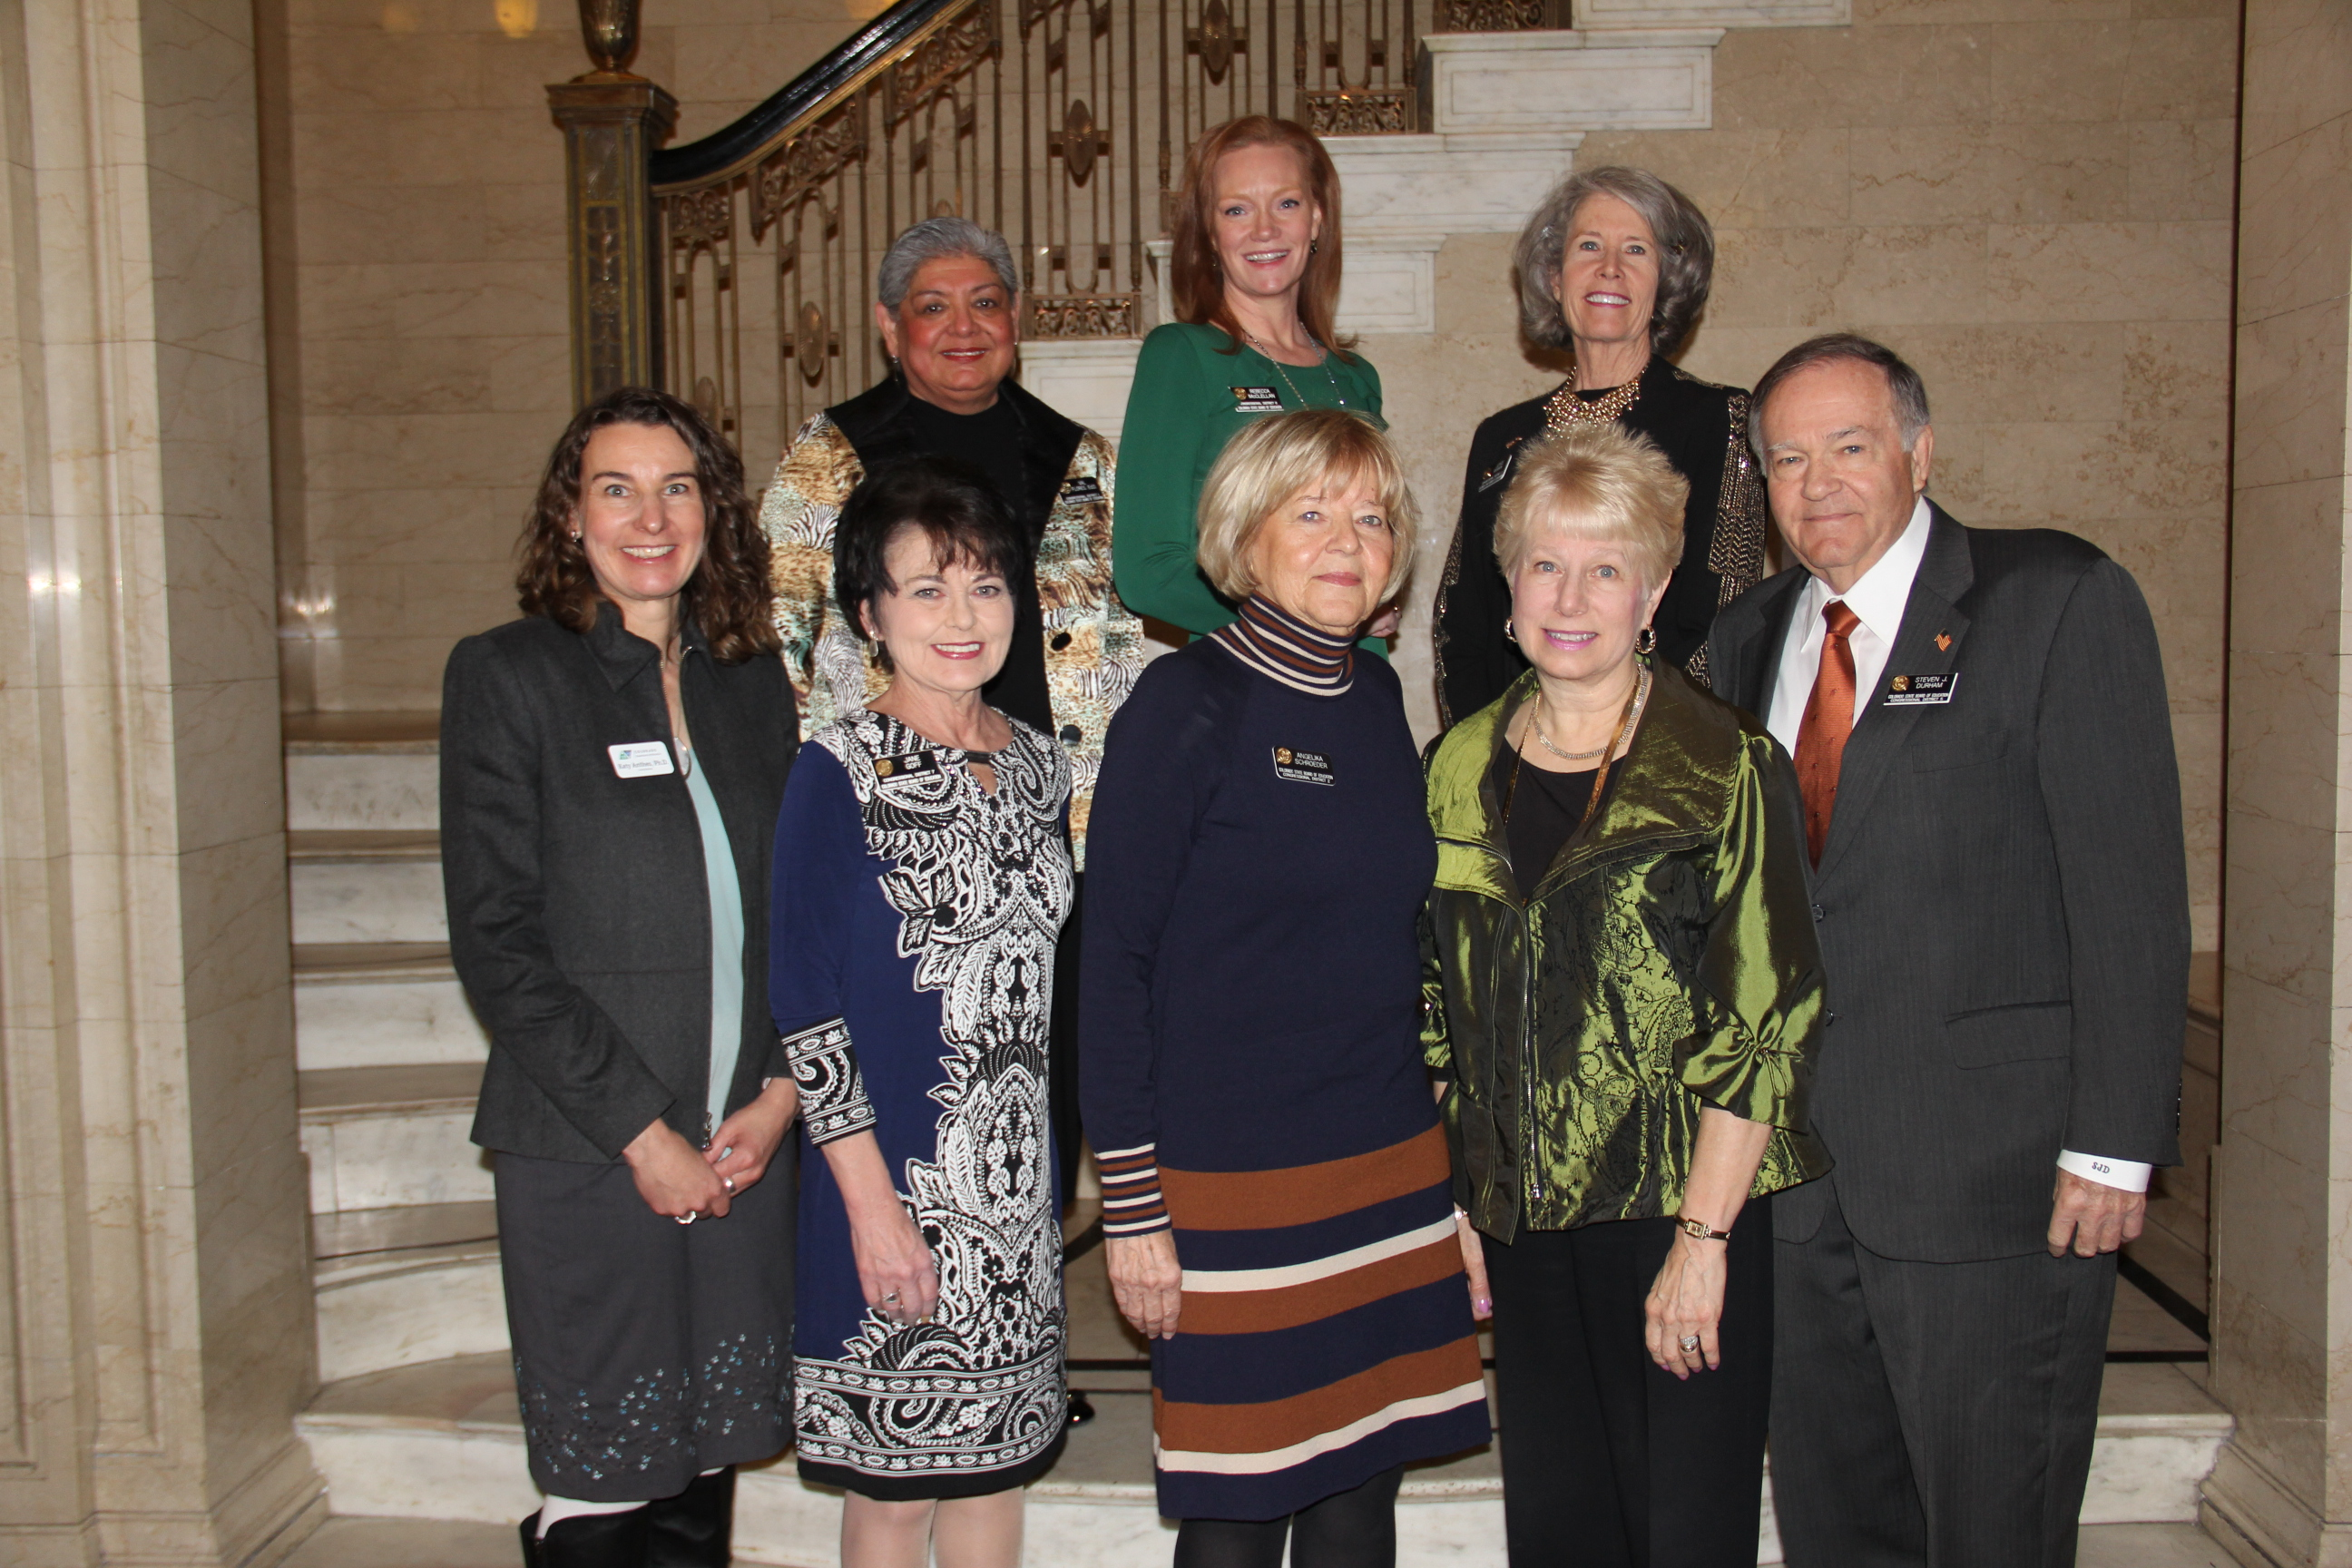 State Board of Education members with Commissioner Anthes